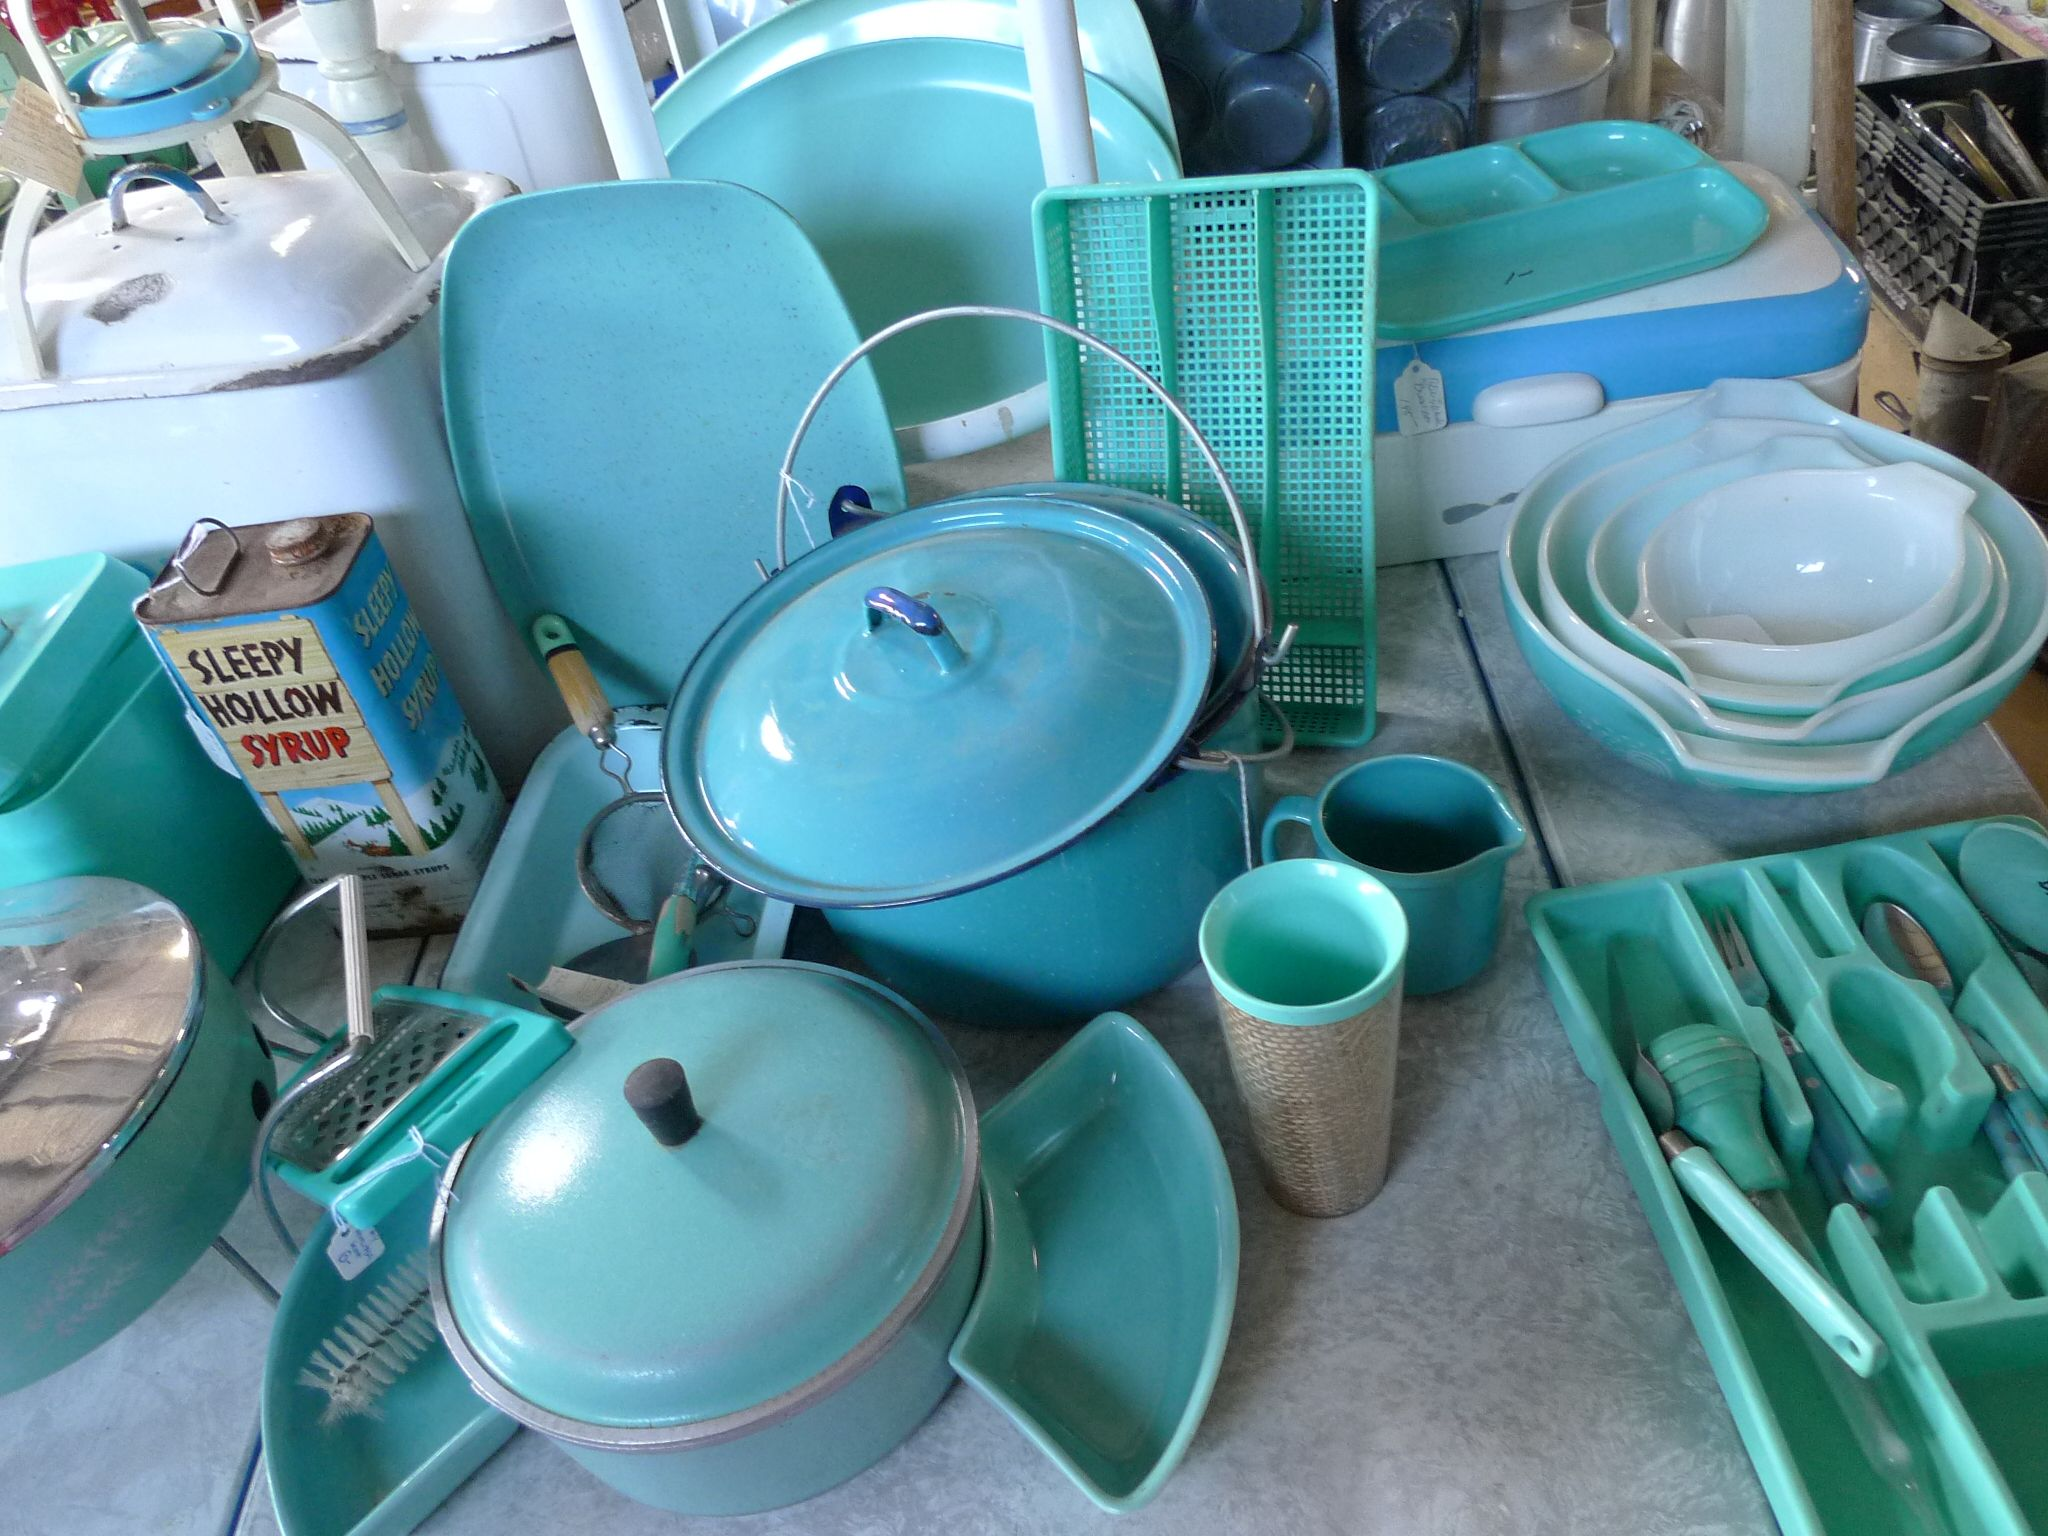 nice collection of vintage turquoise kitchen items | Vintage ...